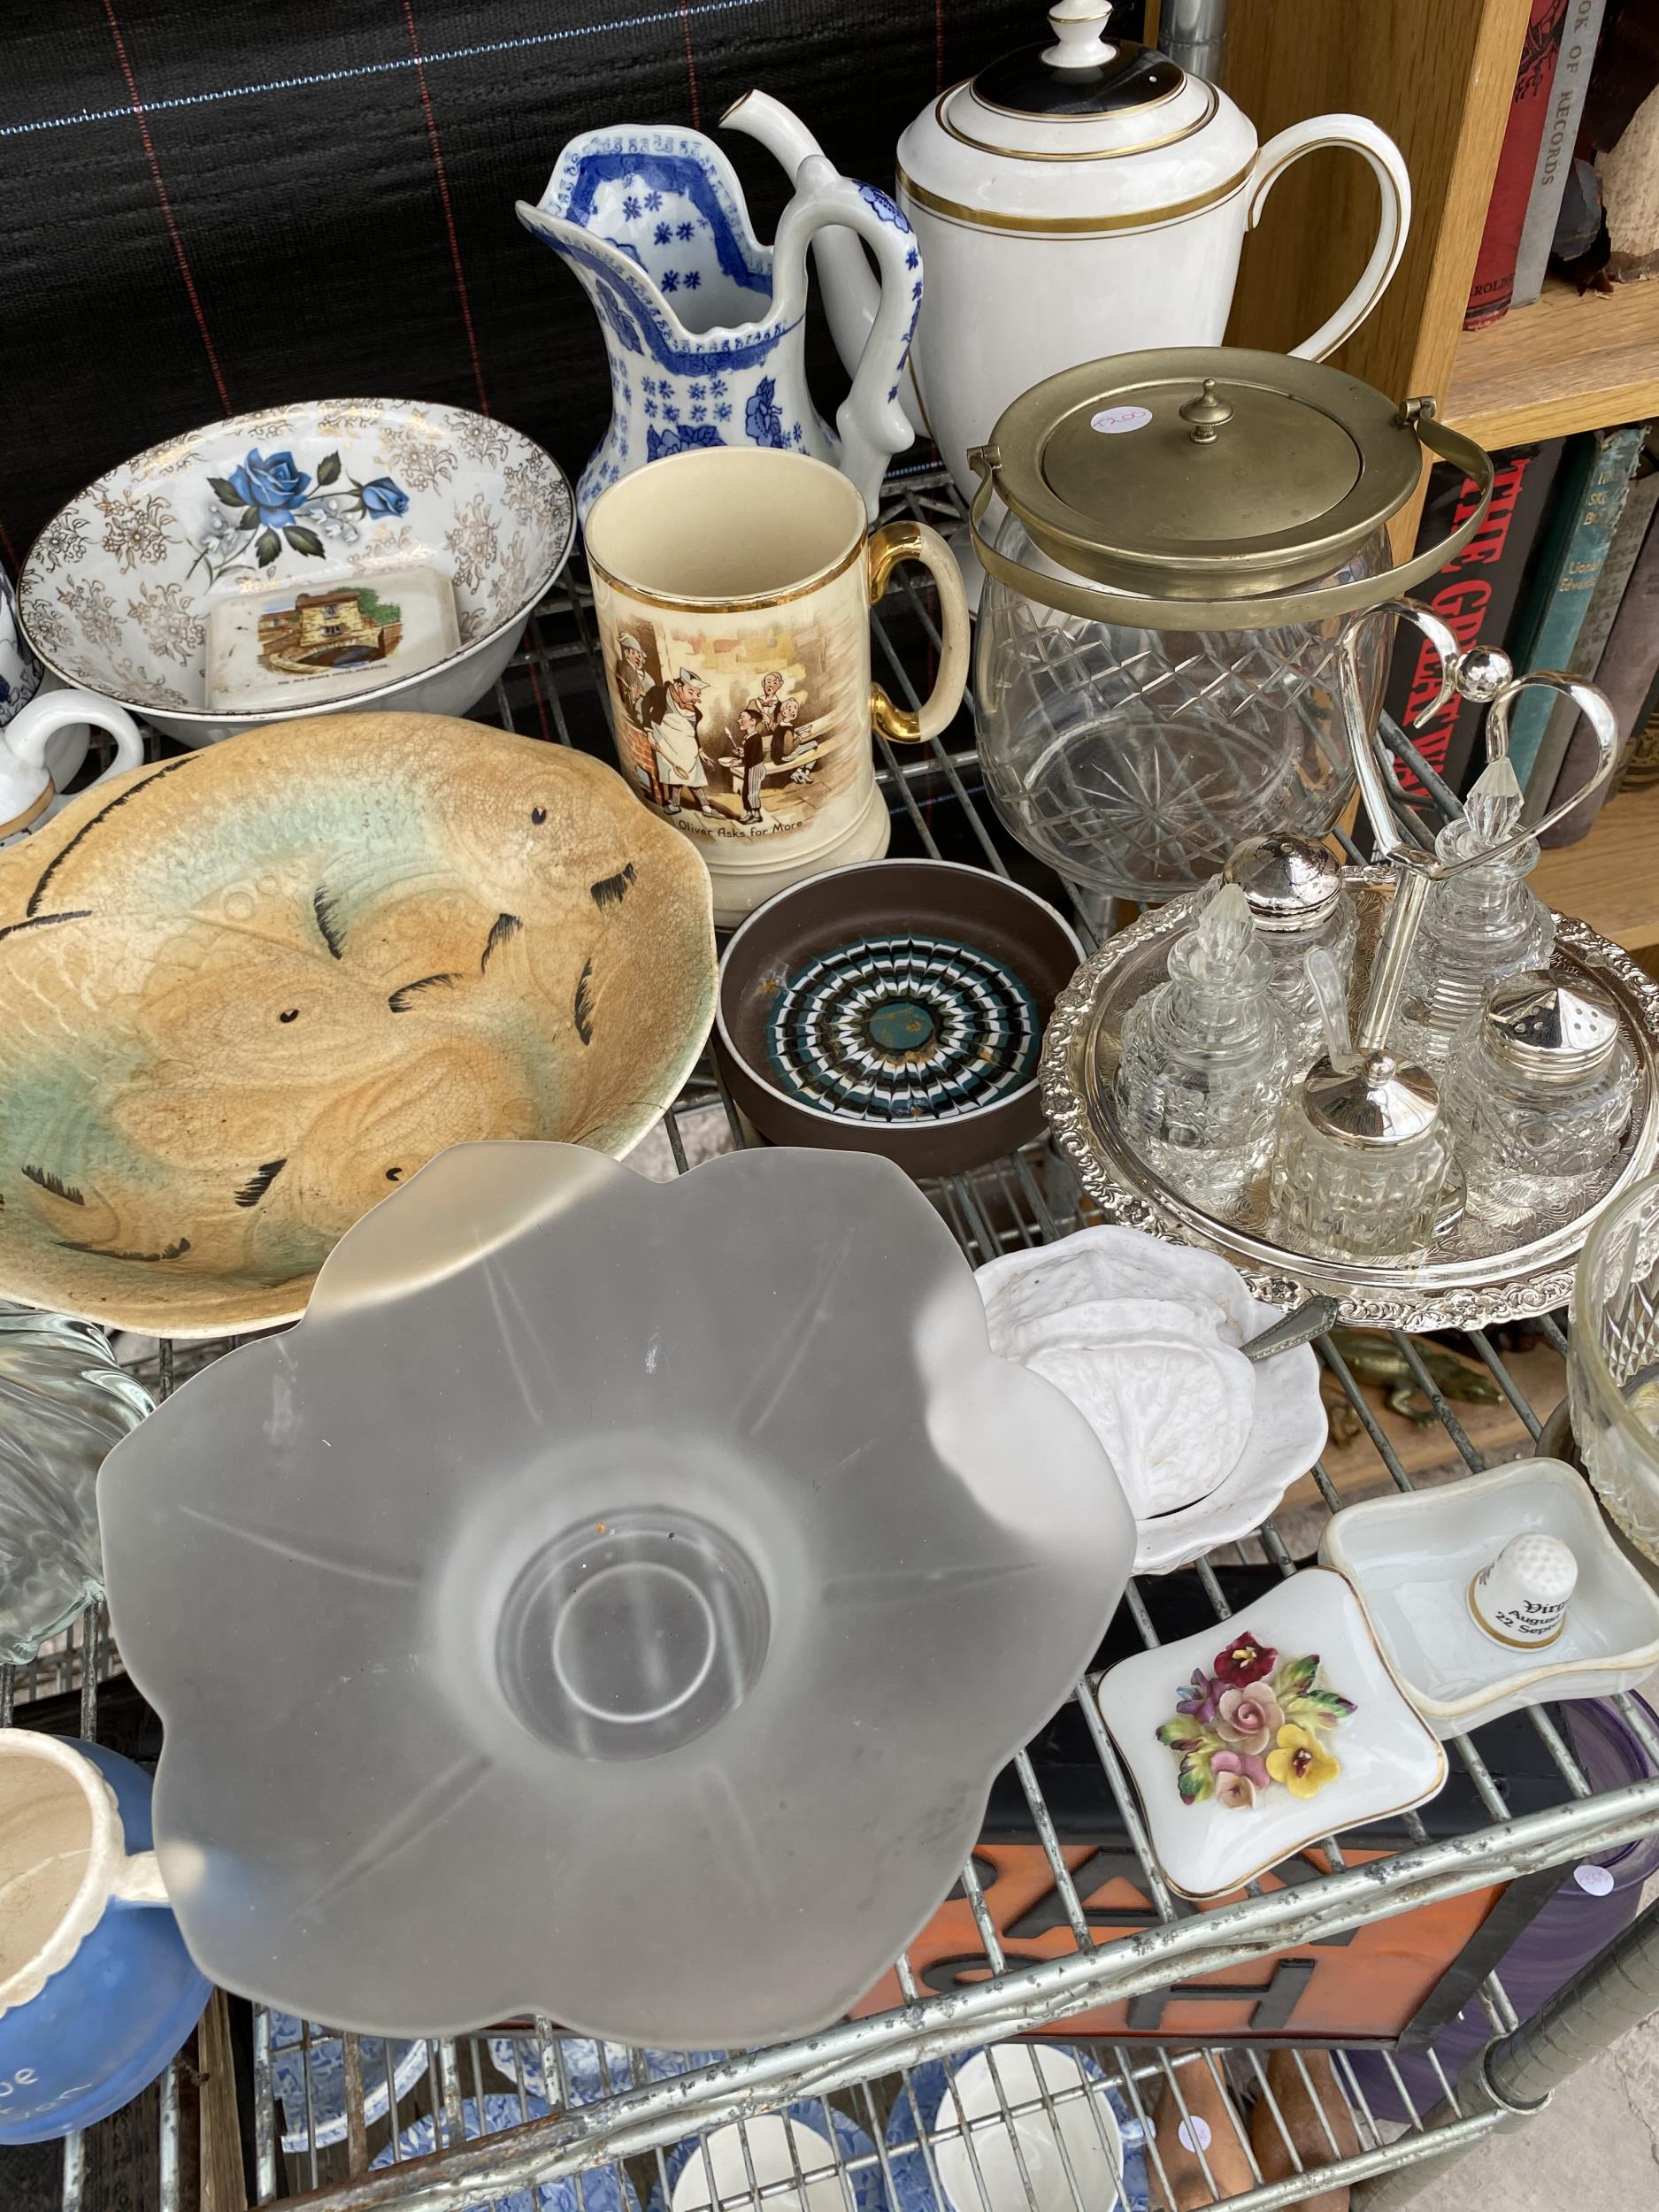 AN ASSORTMENT OF CERAMIC AND GLASS WARE TO INCLUDE PLATES, A CRUET SET WITH STAND AND CERAMIC JUGS - Image 3 of 3